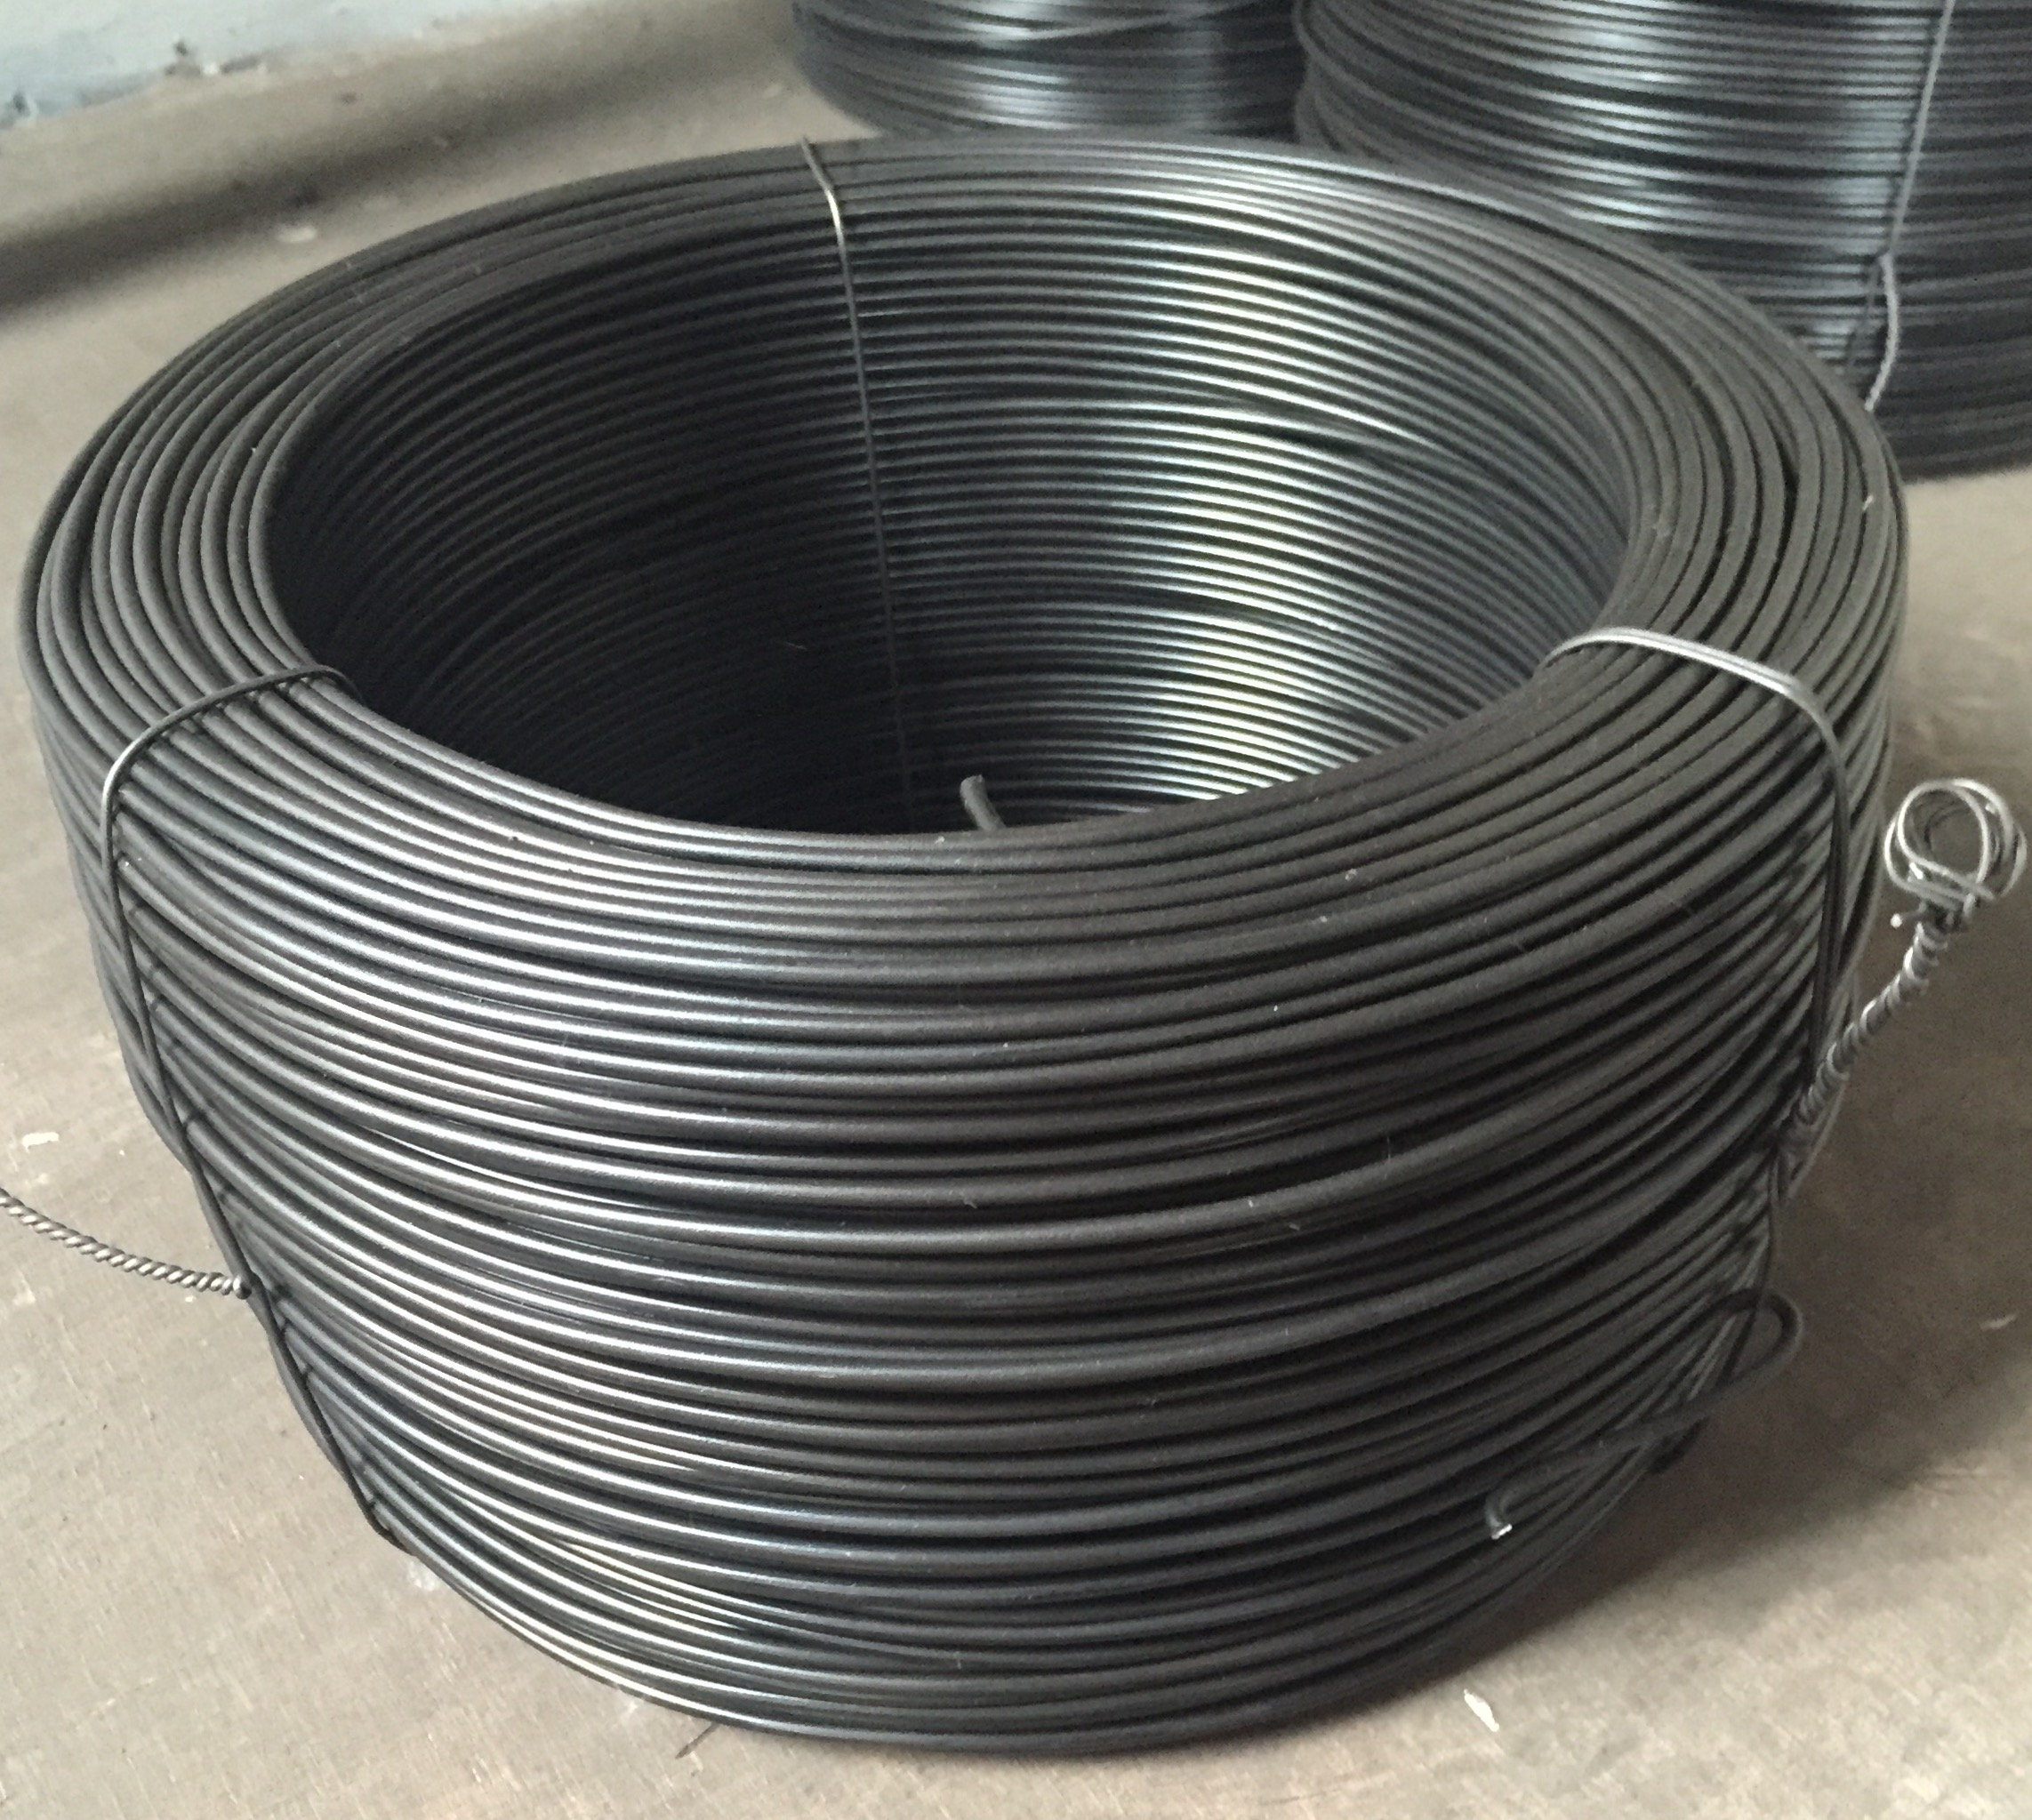 Rewound Coils of Baling wire - Keljay